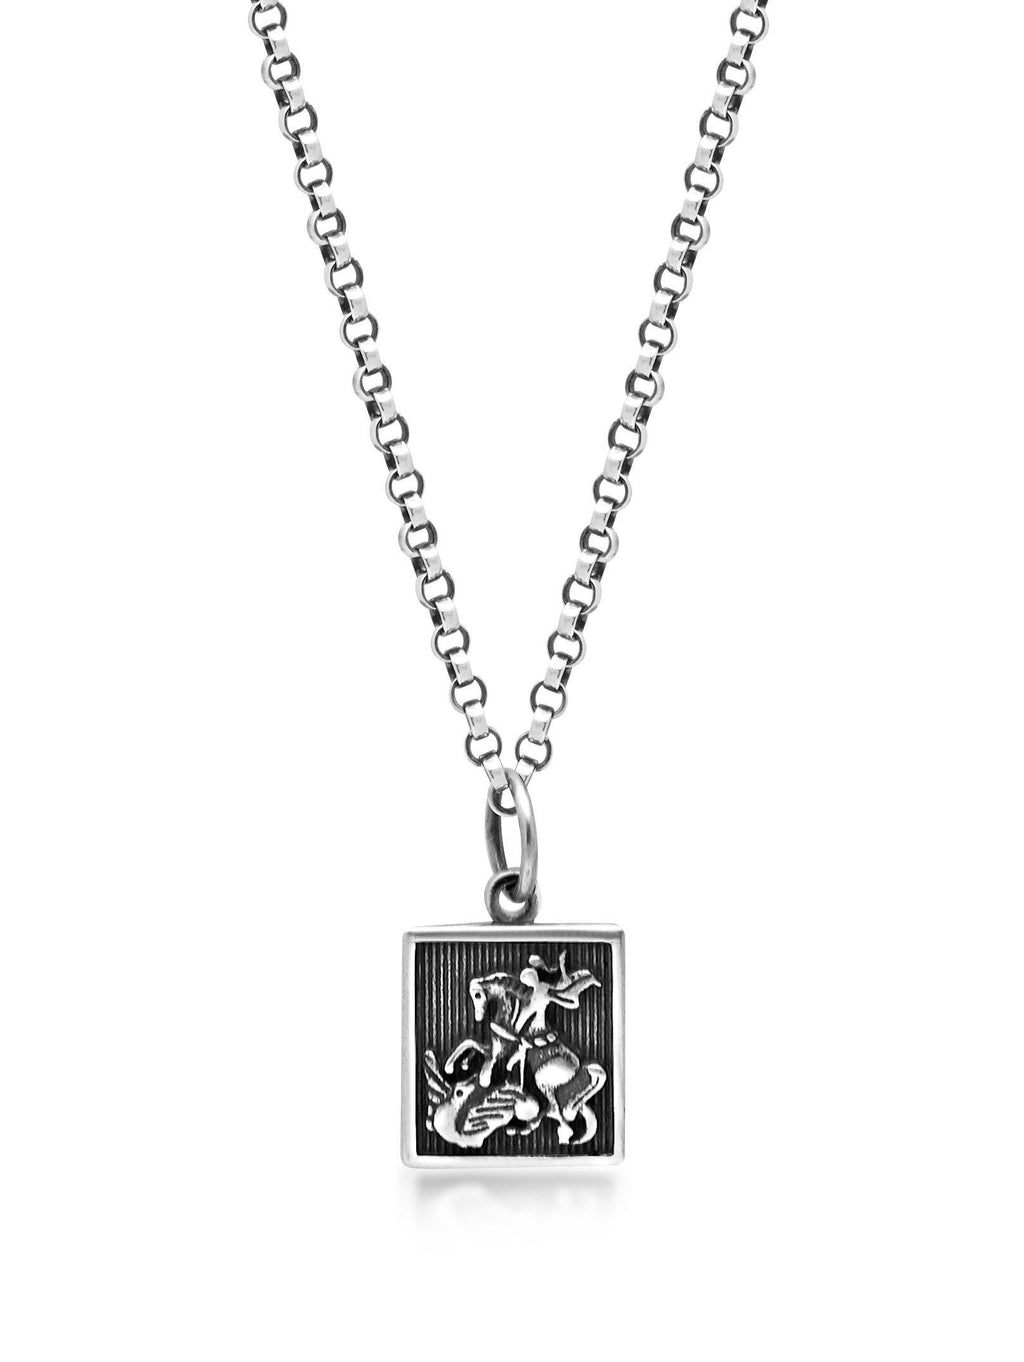 Women's Silver Necklace with Saint George and The Dragon Pendant